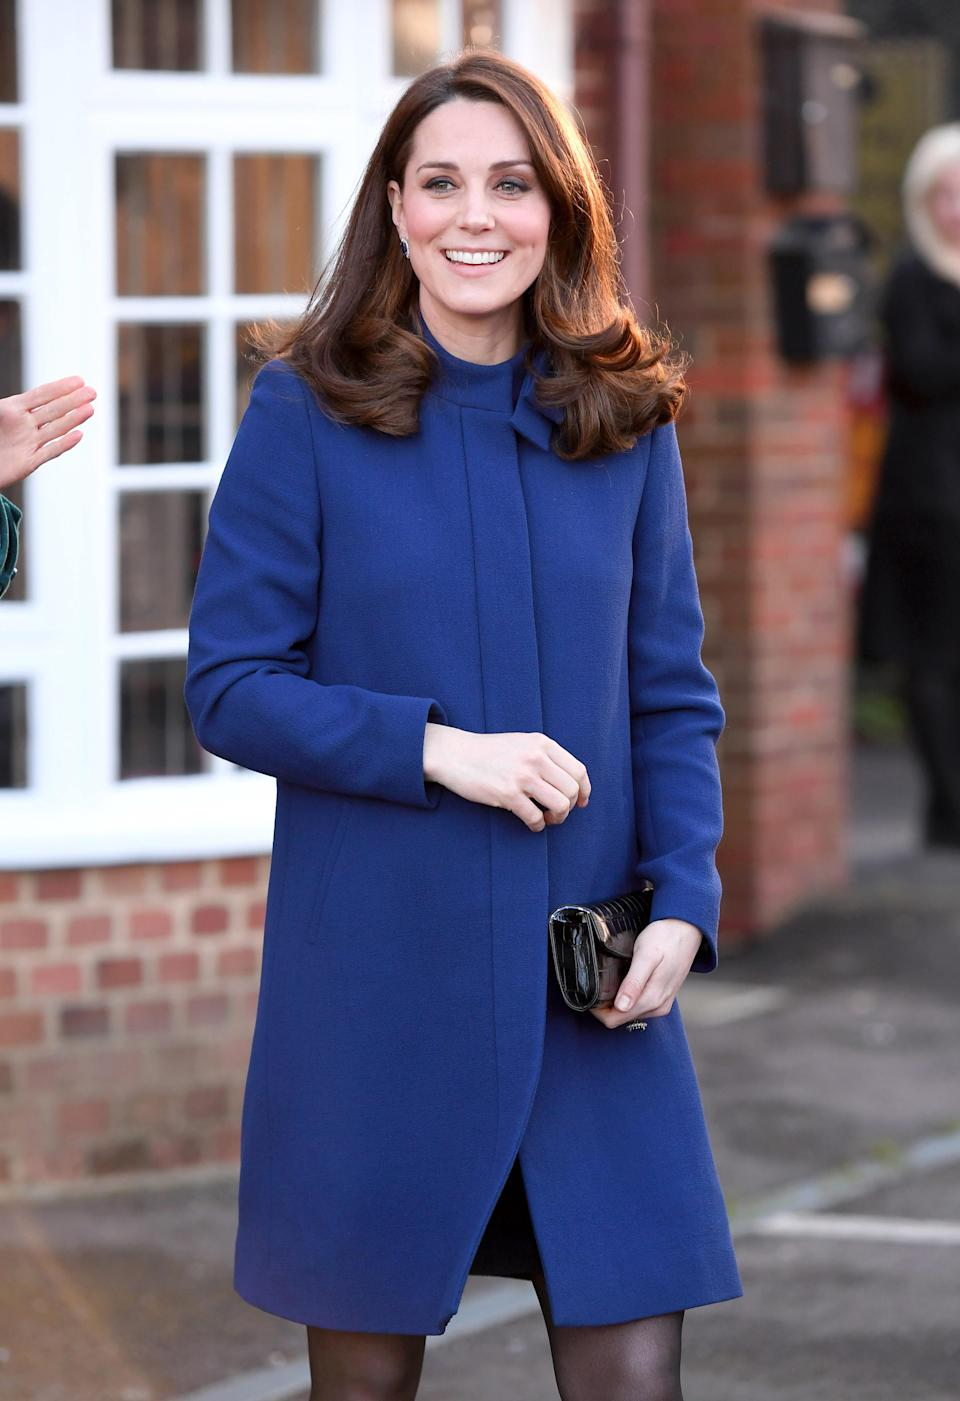 <p><strong>The occassion:</strong> Opening the Action On Addiction Community Treatment Centre in Wickford, Essex.<br><strong>The look:</strong> A royal blue coat by Goat, which she wore with sheer tights. <br>[Photo: Getty] </p>